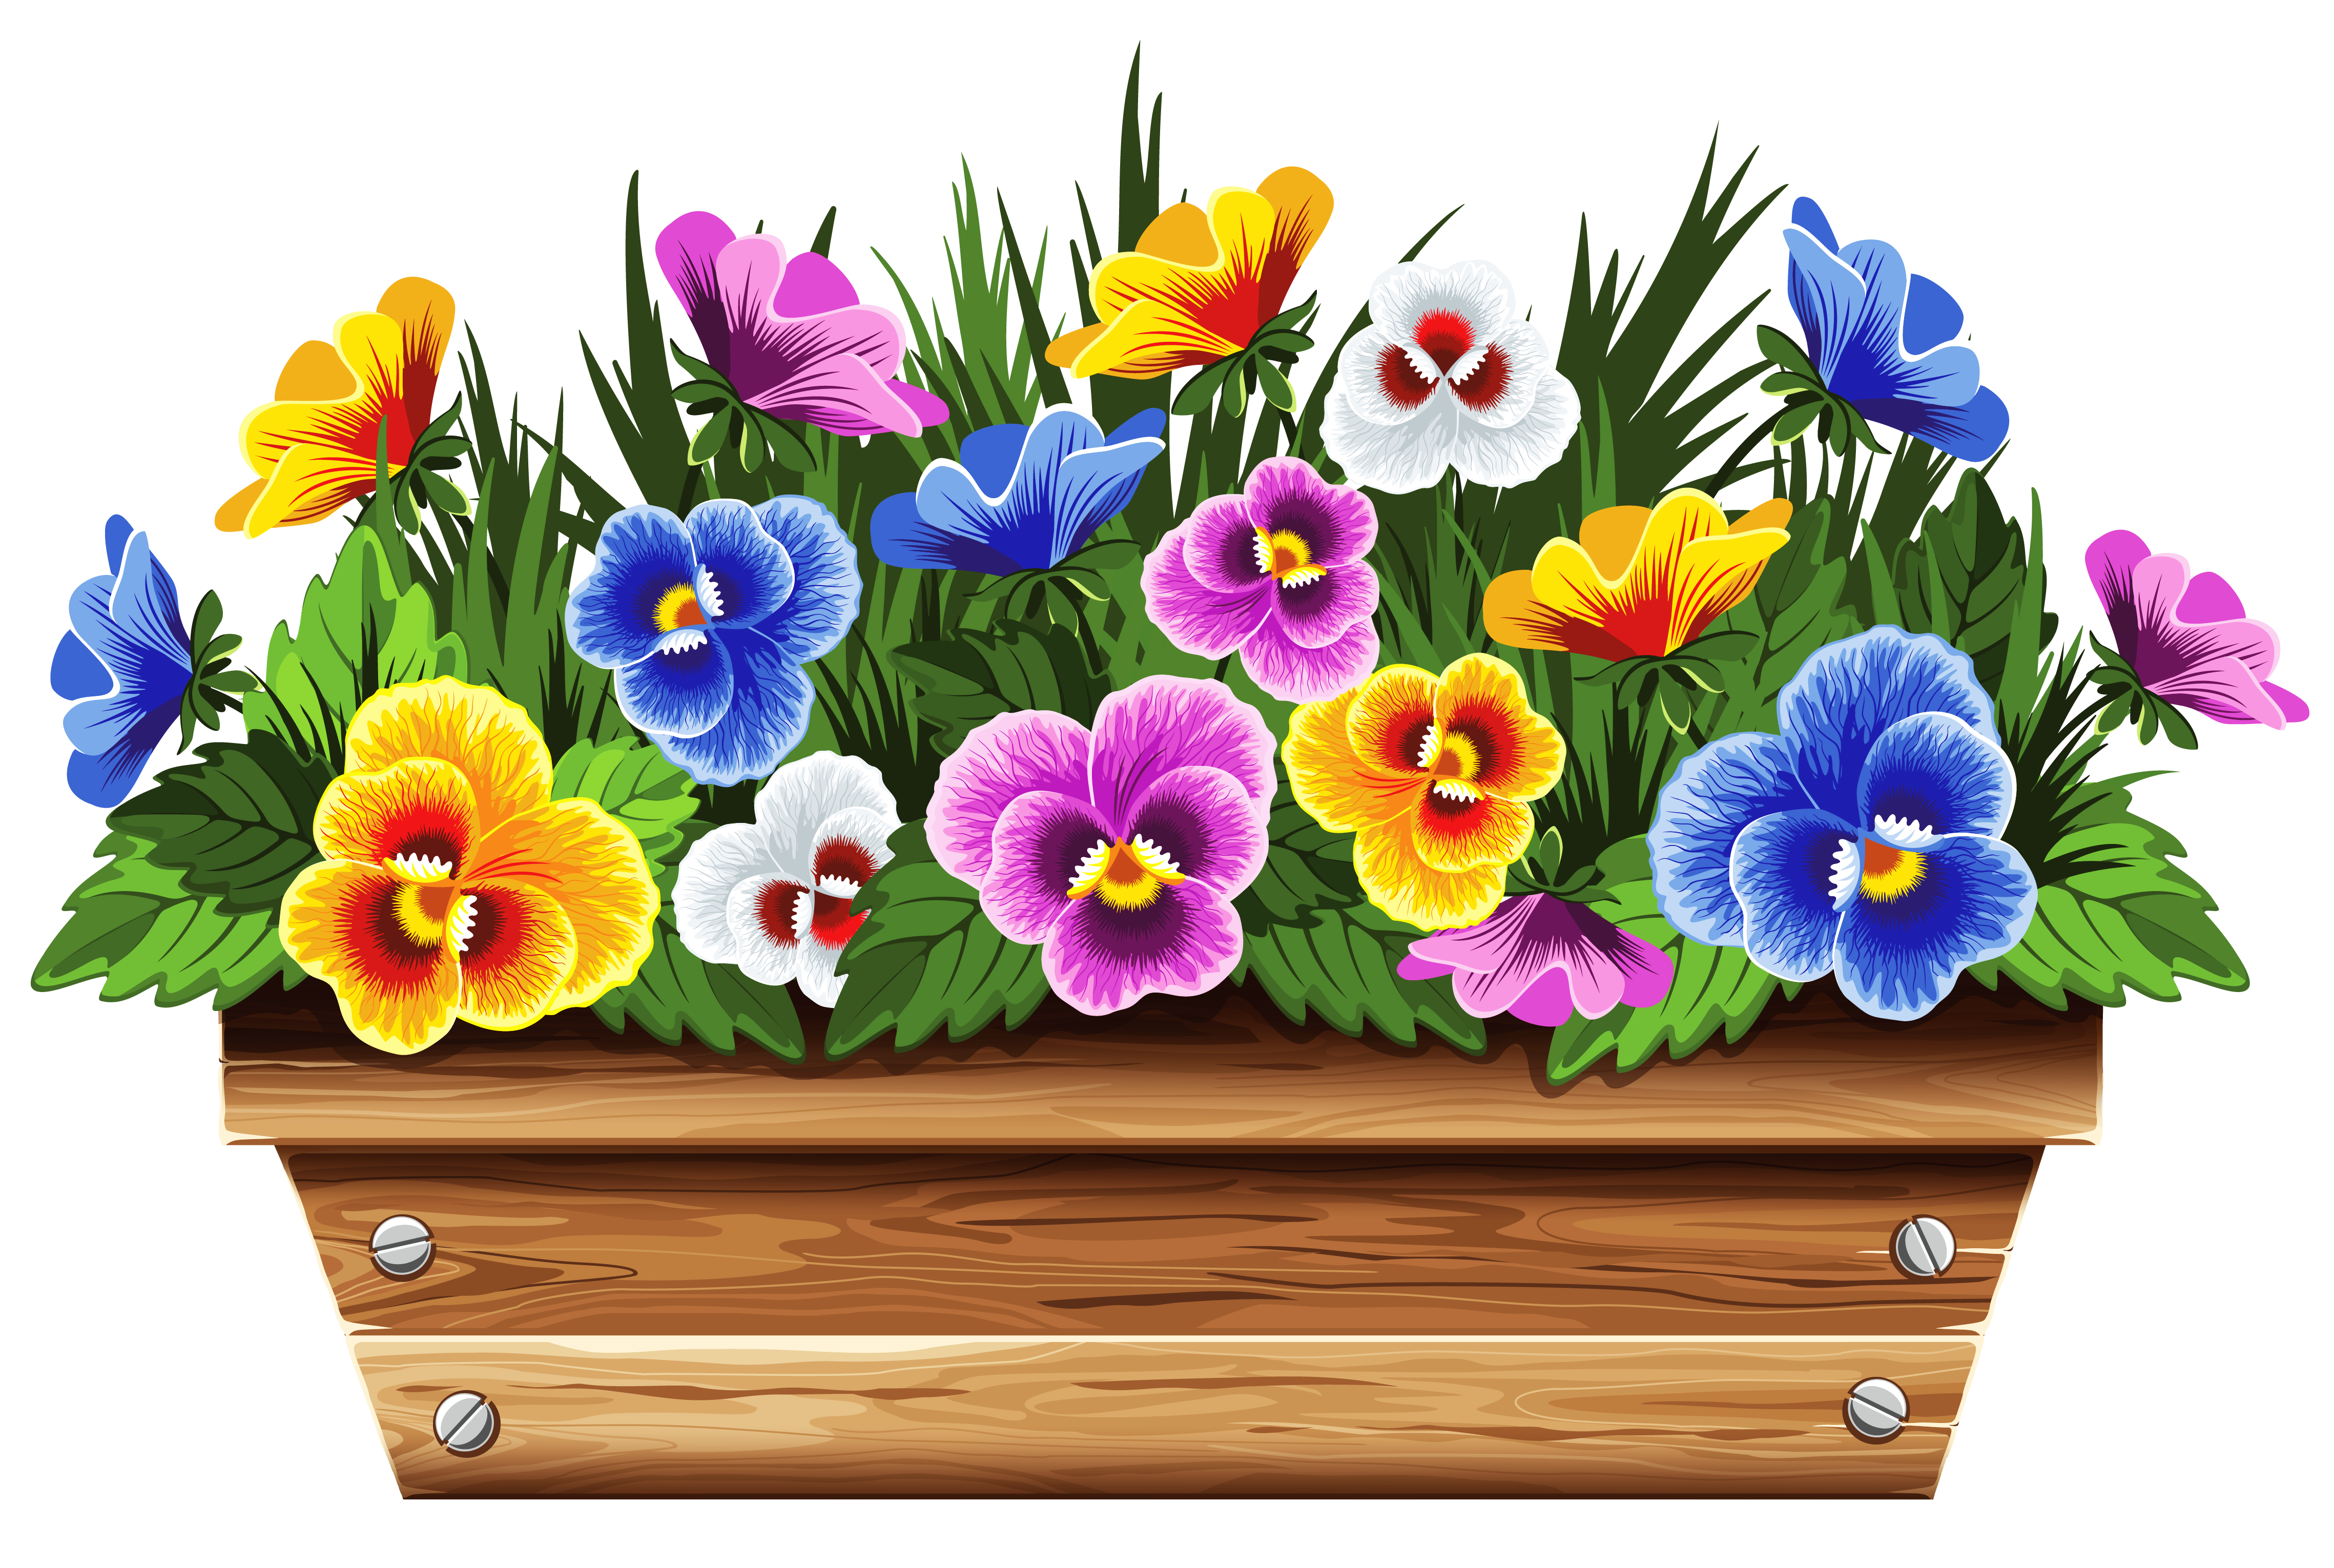 Boxes clipart flower. Box with violets png